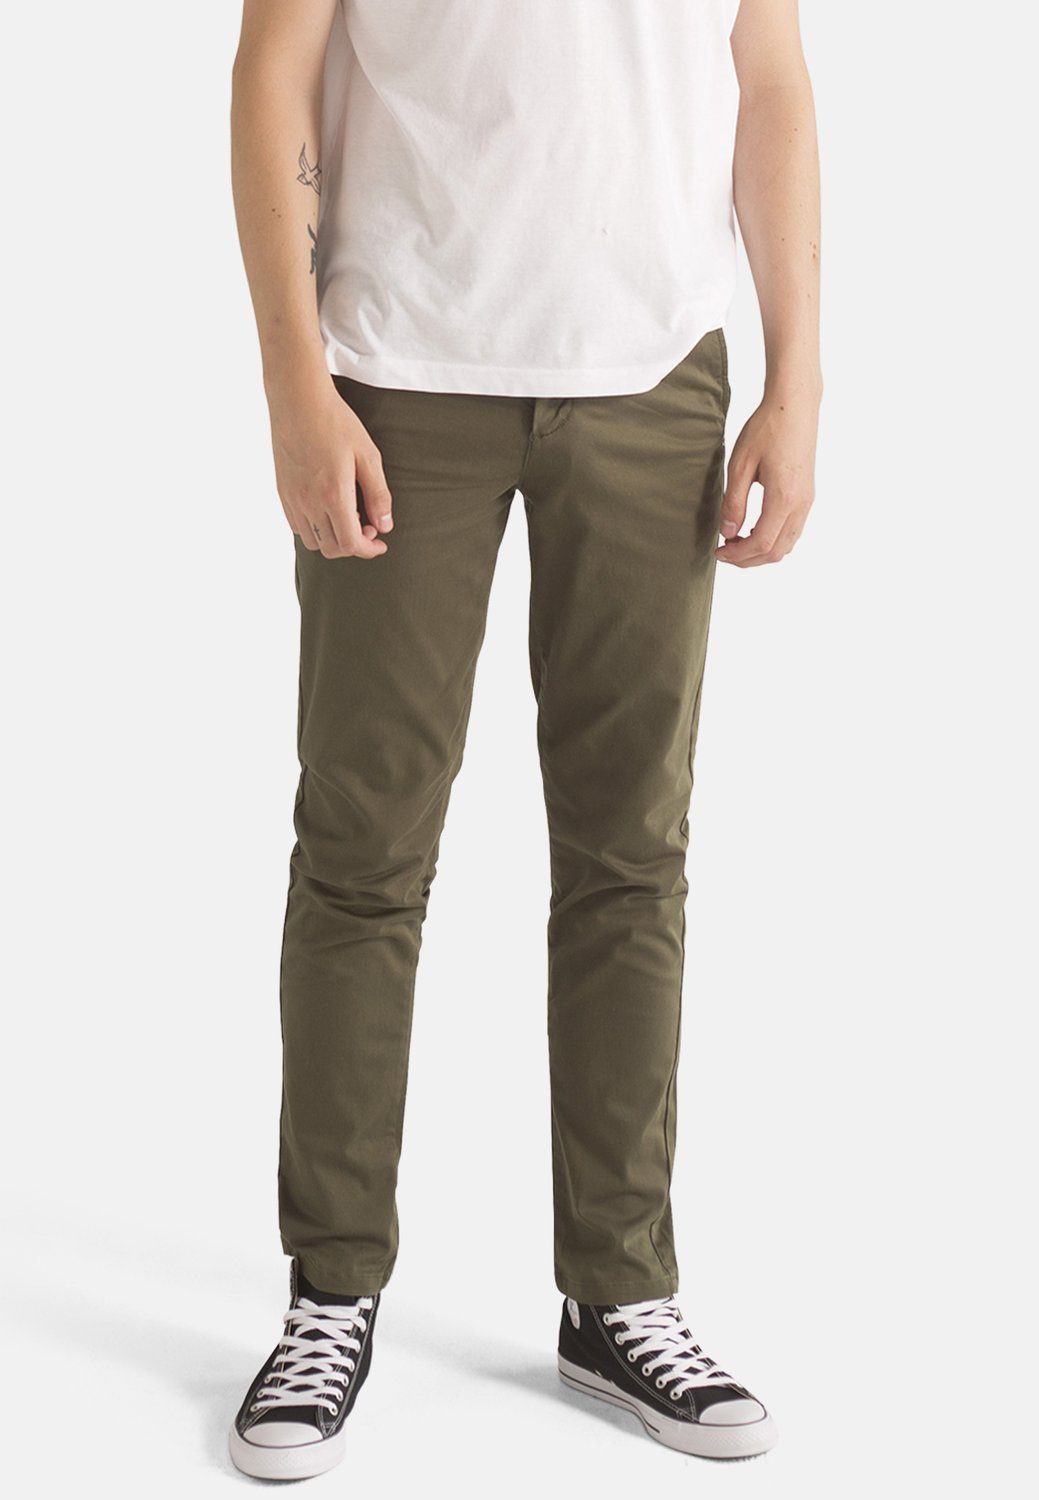 Jeans - MONKEE Mens Organic Chino In Olive Green